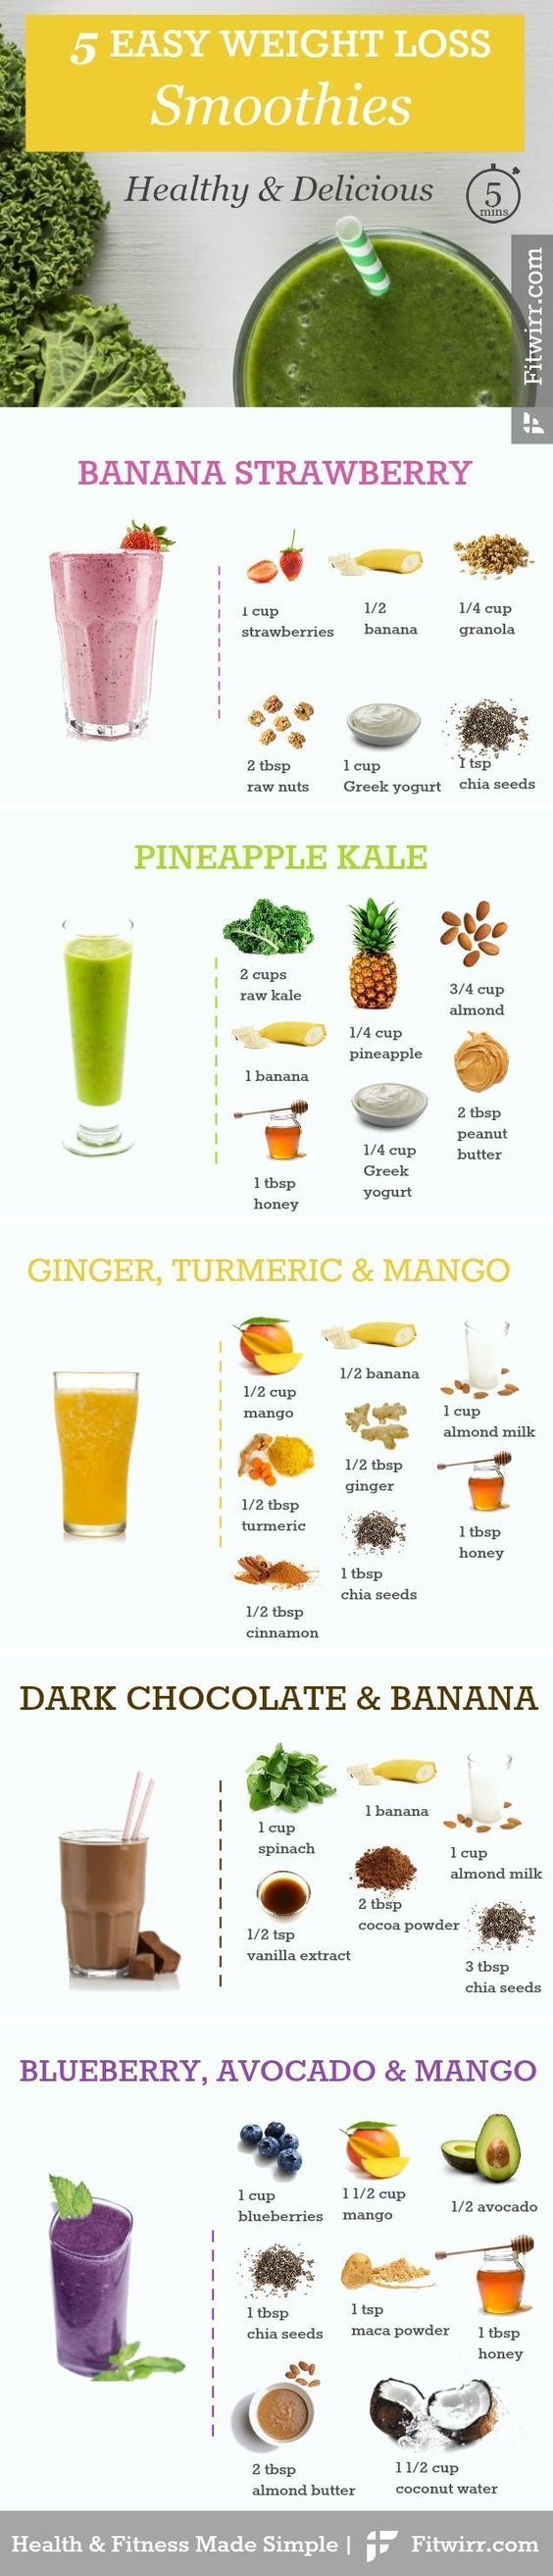 Healthy smoothies could be your best-kept weight loss secrets. Filling and satisfying these blended drinks can provides an easy way to load up on tons of import